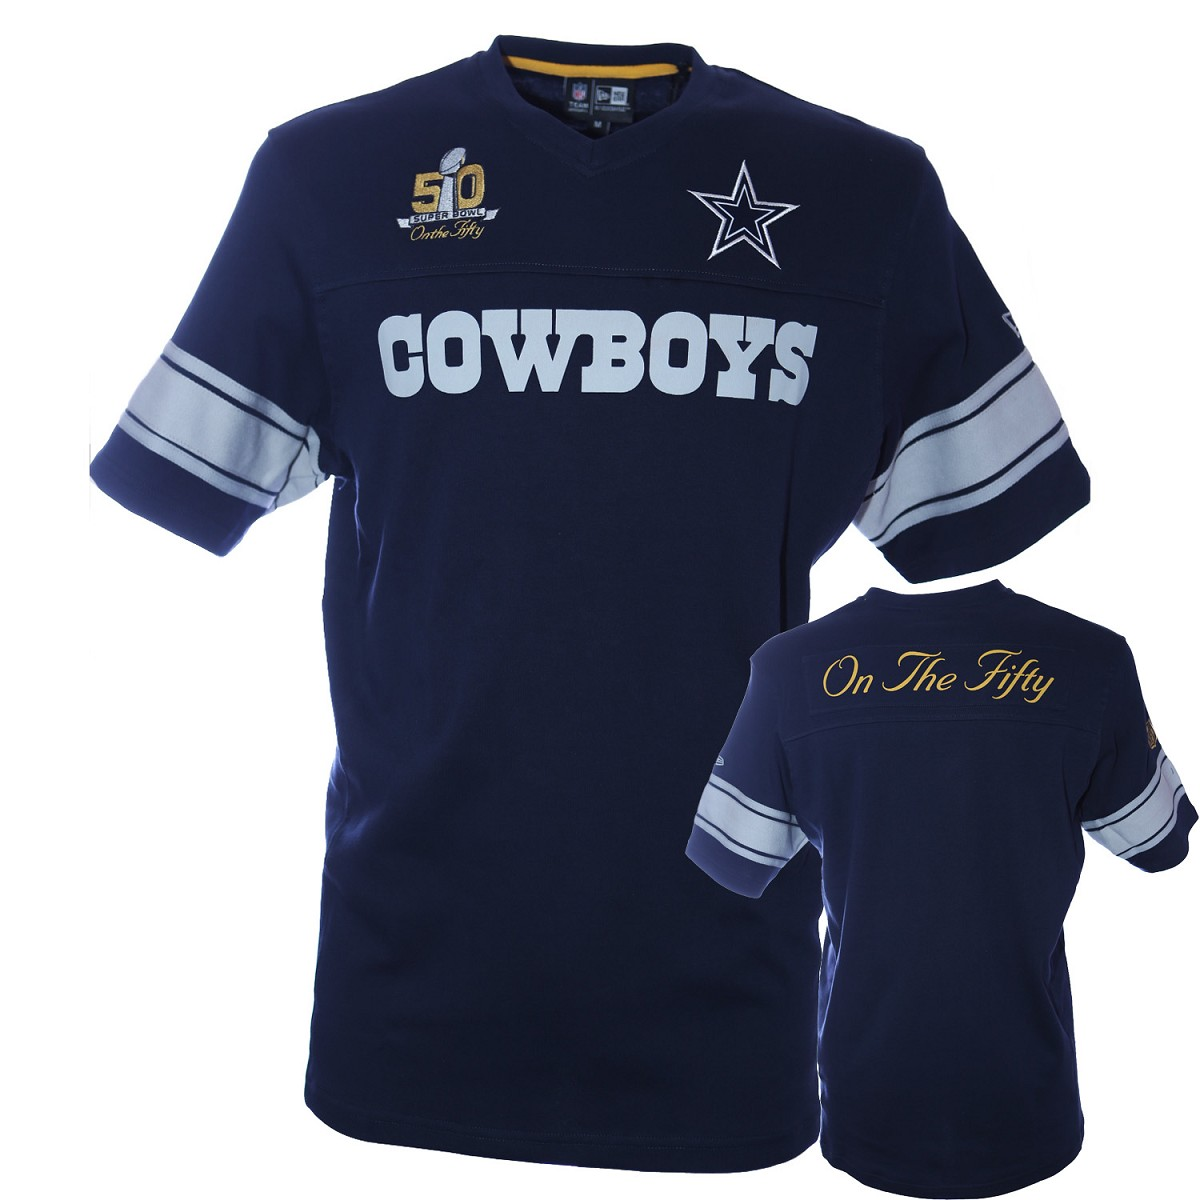 Jersey Nfl New Era Sb50 Af Dallas Cowboys Jerseys Apparel